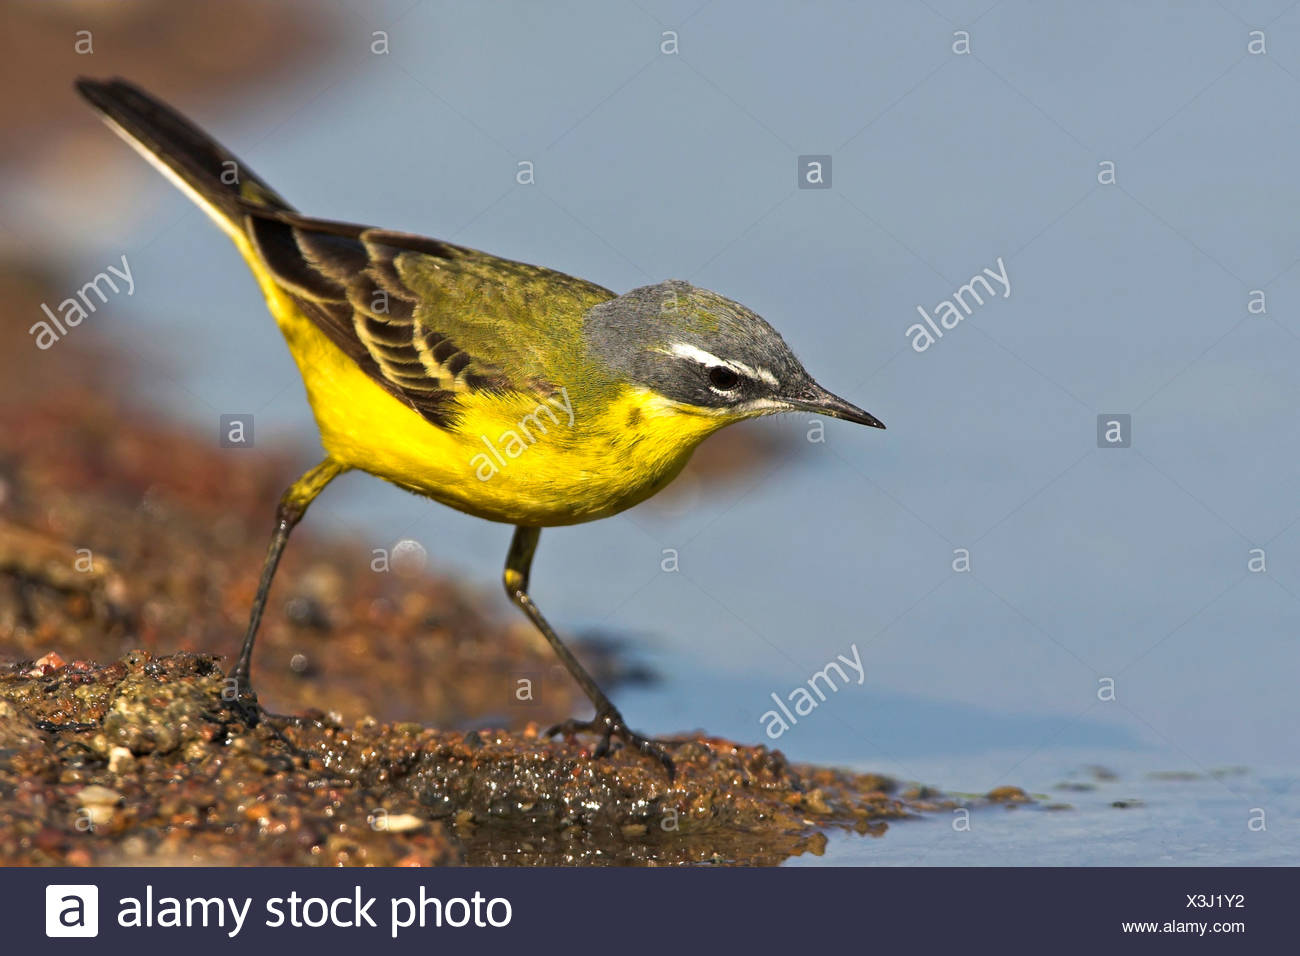 Blue-headed Wagtail, Yellow Wagtail (Motacilla flava flava), standing at the bank of a quiet water, Greece, Lesbos - Stock Image